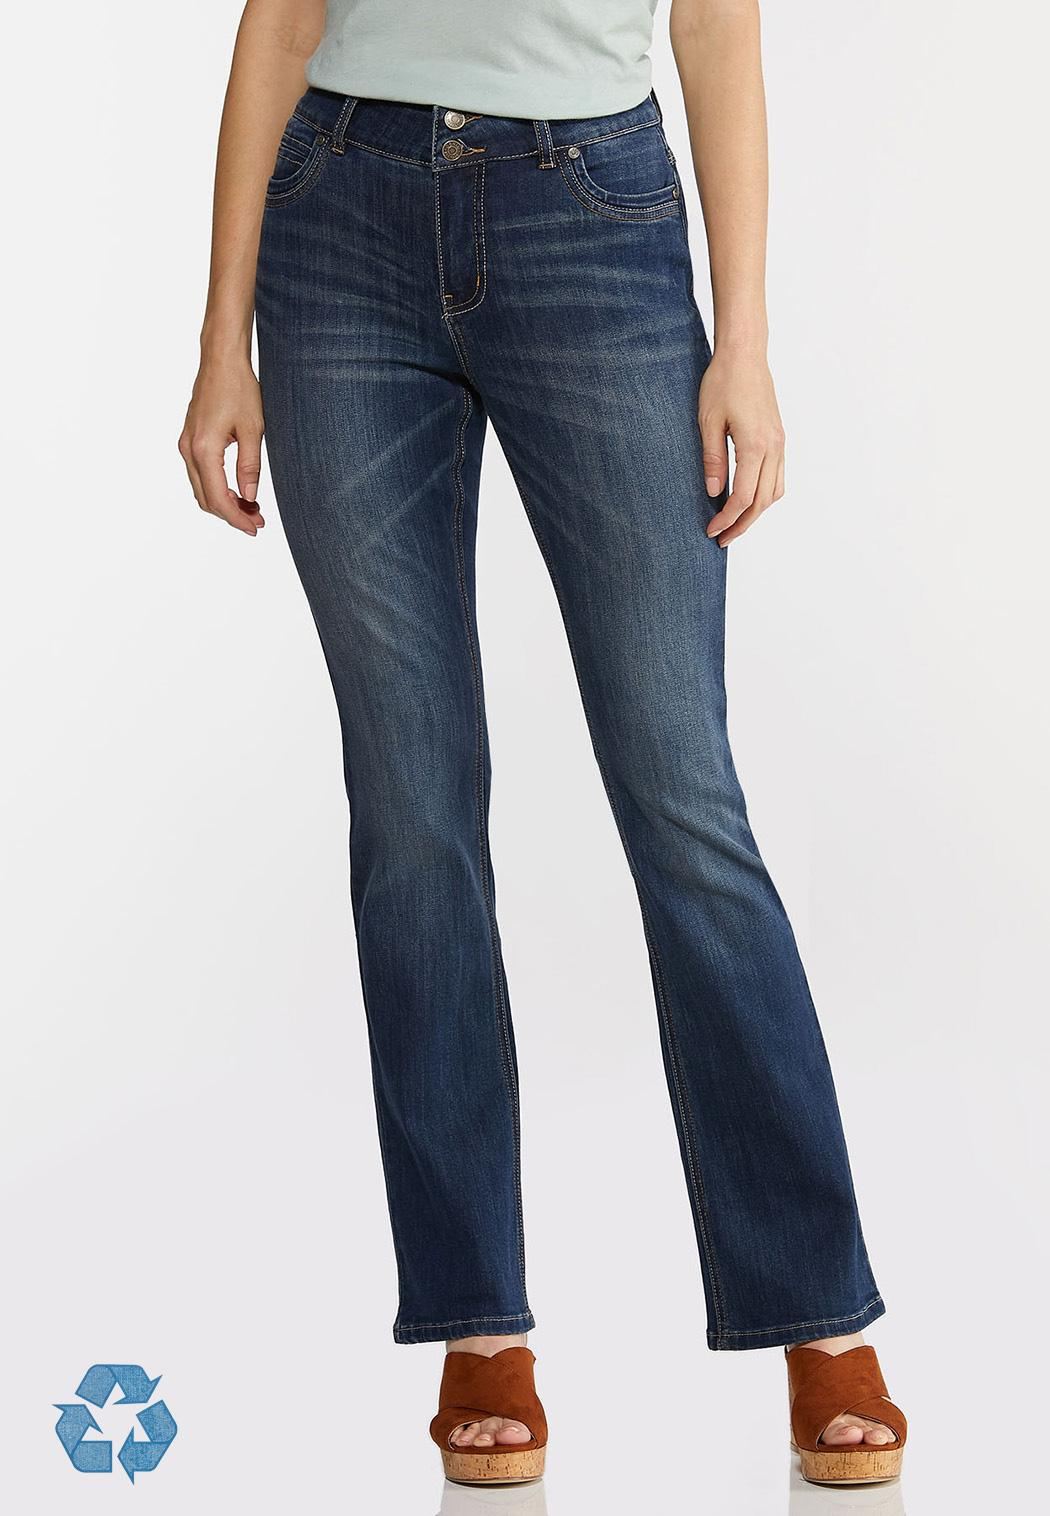 High-Rise Bootcut Jeans (Item #44376911)